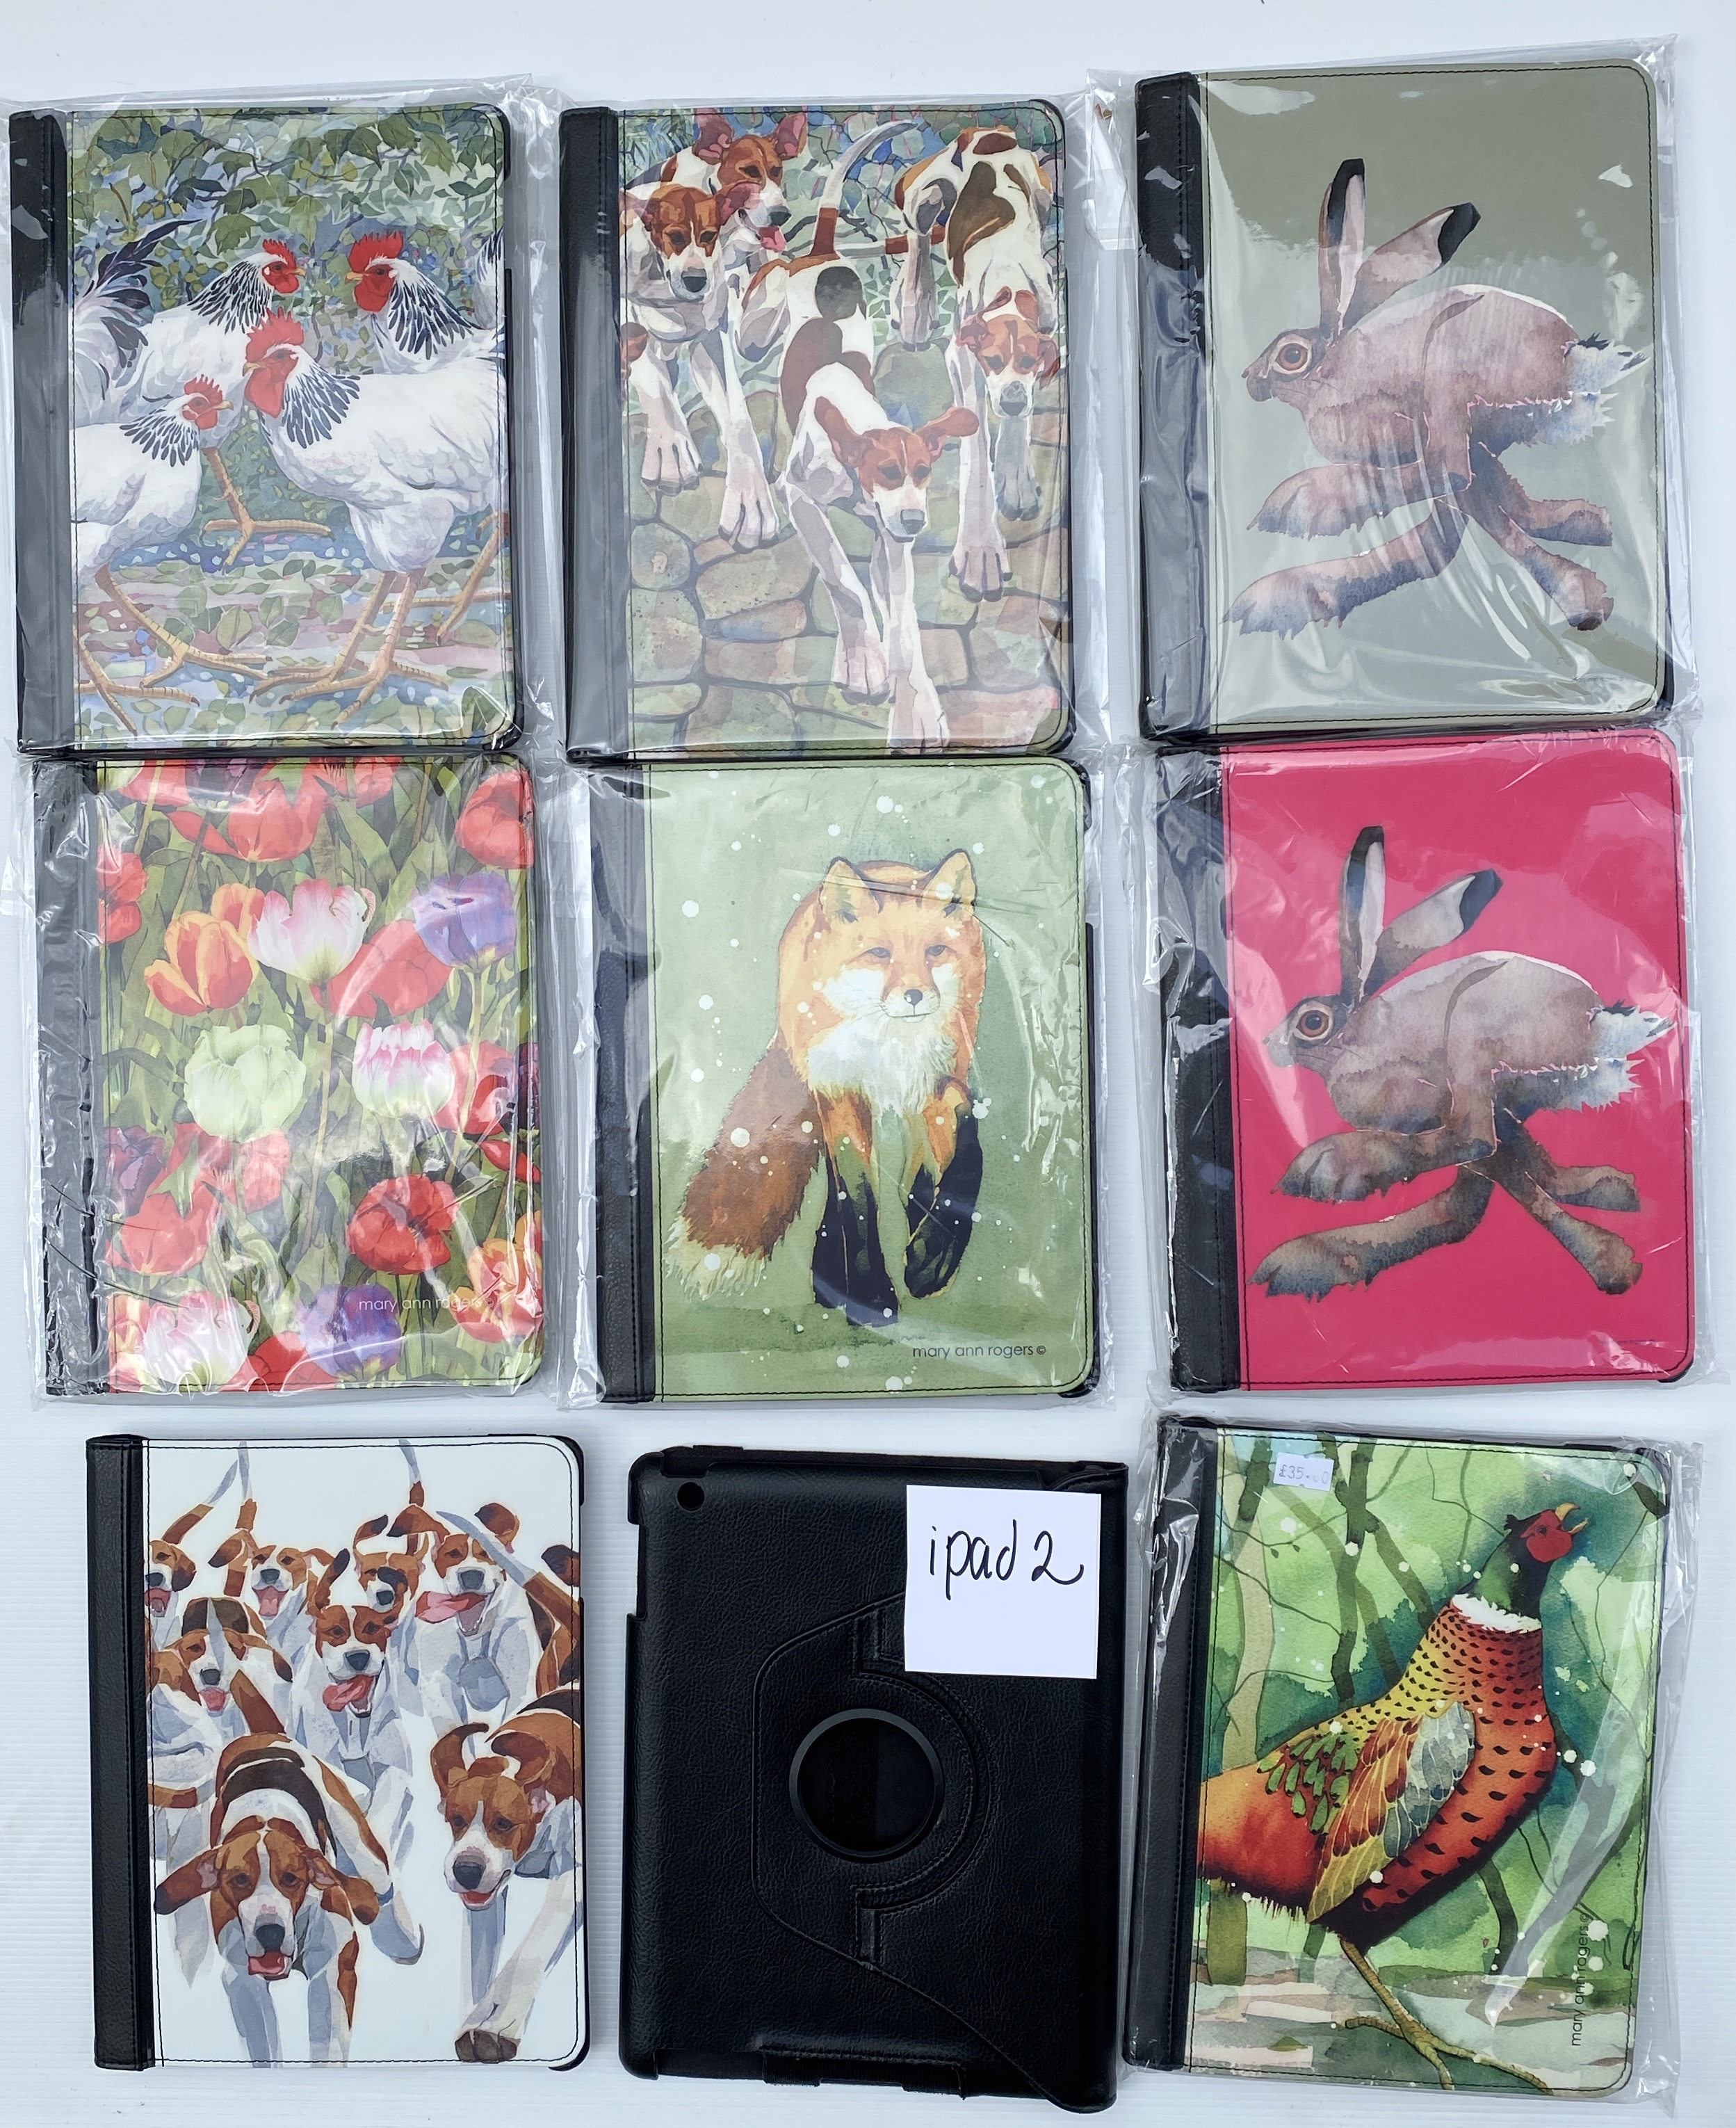 APPLE iPad 2 cases BARGAIN!!! were £40, now just £20 image